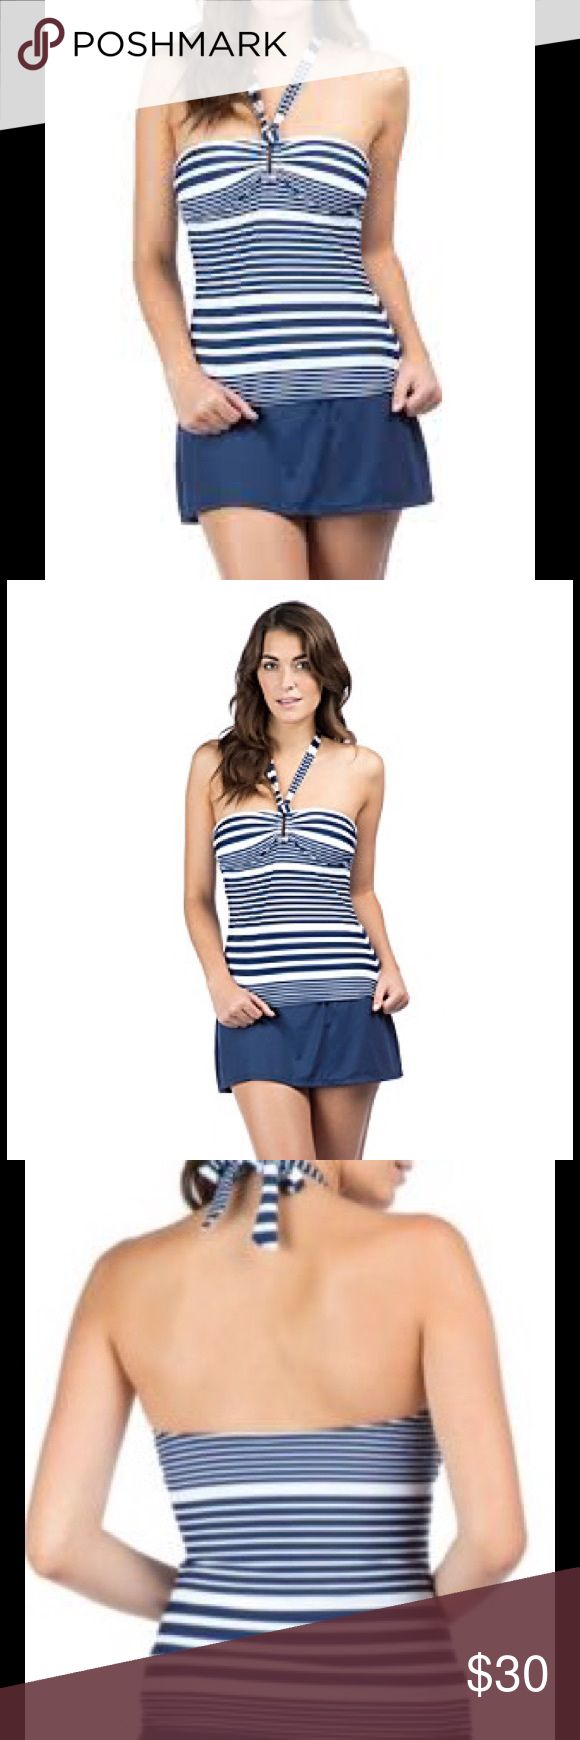 Chaps swimming Top Shirred Ring Front Bandini Gear up for beach season this summer with this shirred top from Chaps. To ensure the perfect fit, tops and bottoms are sold separately. Featured in blue Stripe tubini Silver ring Removable cups Removable/adjustable halter neck ties Shirred tummy Nylon / elastane Hand wash cold, use only non-chlorine bleach Hang dry, do not iron Imported Chaps Swim